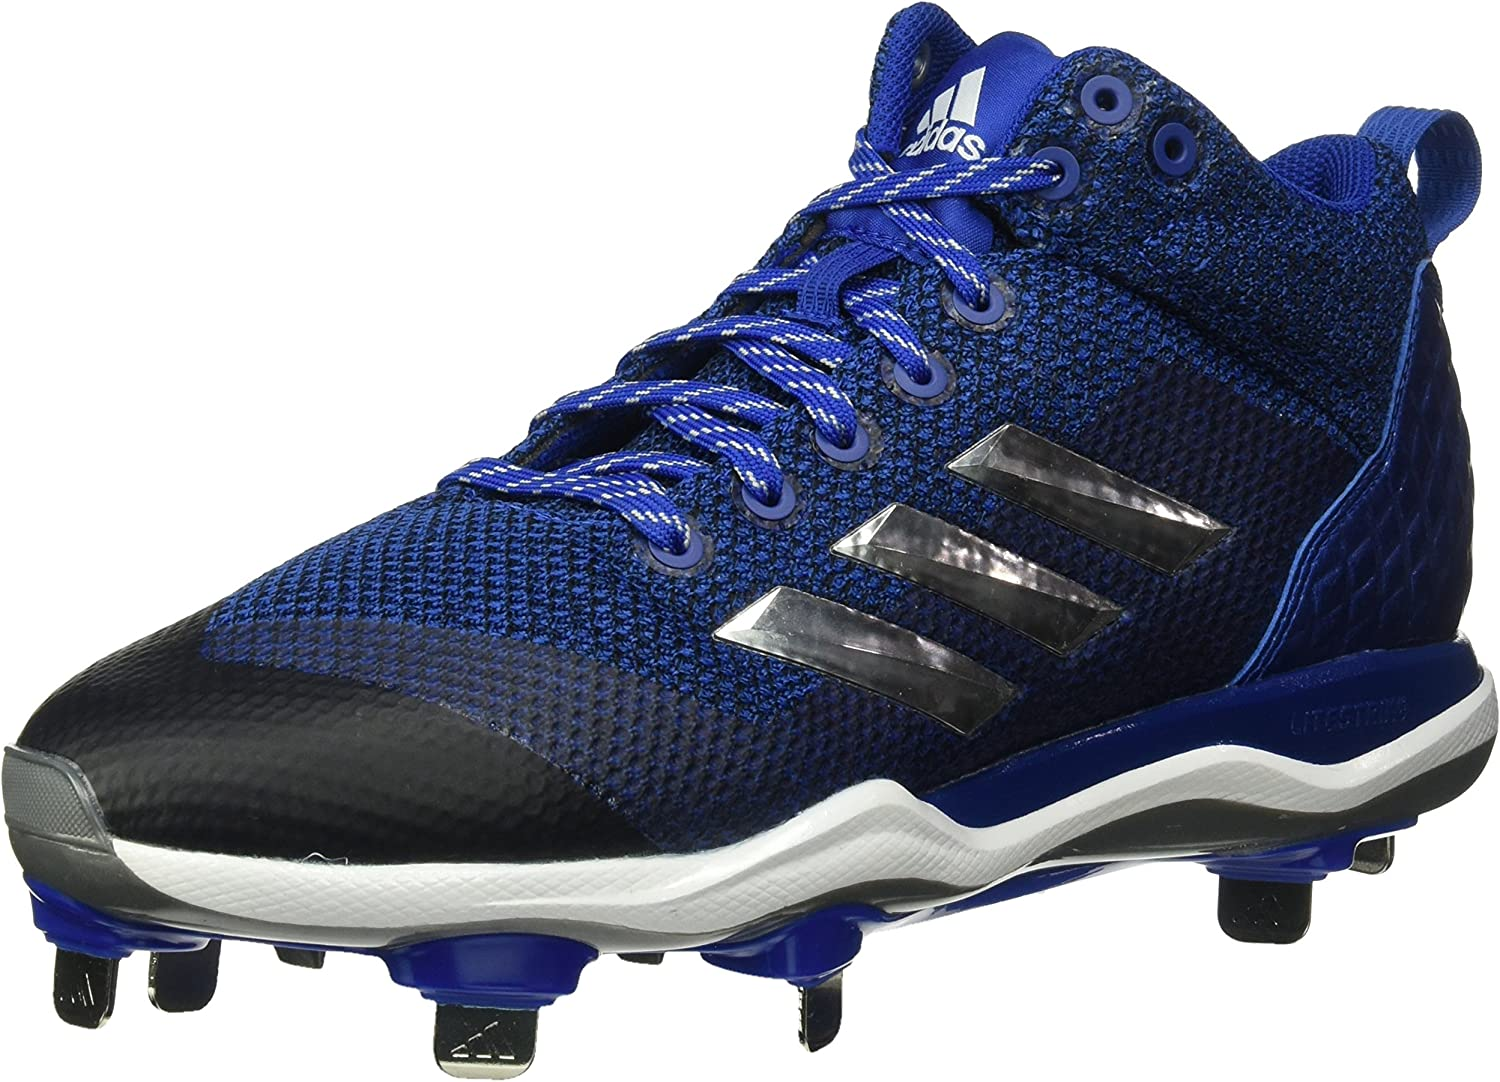 Adidas Men's Freak X Carbon Mid Baseball shoes, Collegiate Royal, Silver met, FTWR White, 12.5 M US